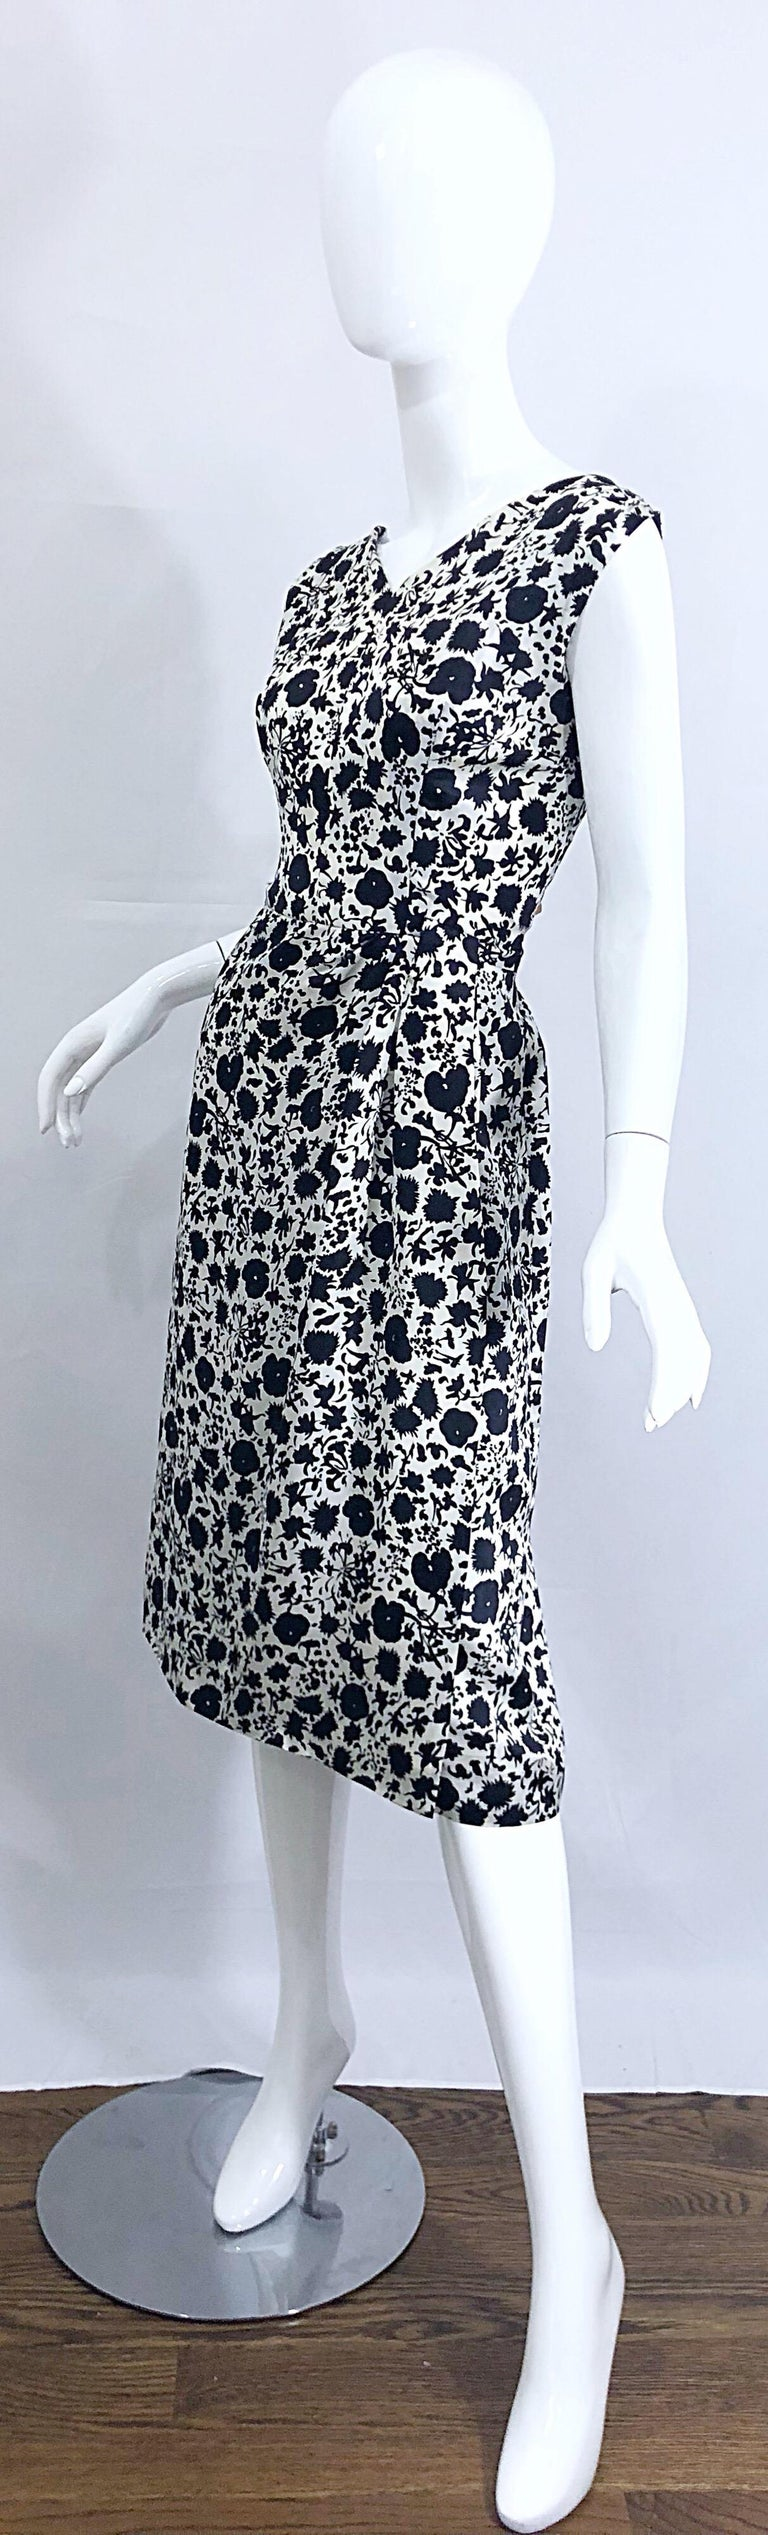 1950s House of Branell Black and White Silk Floral Vintage 50s Wrap Dress For Sale 5